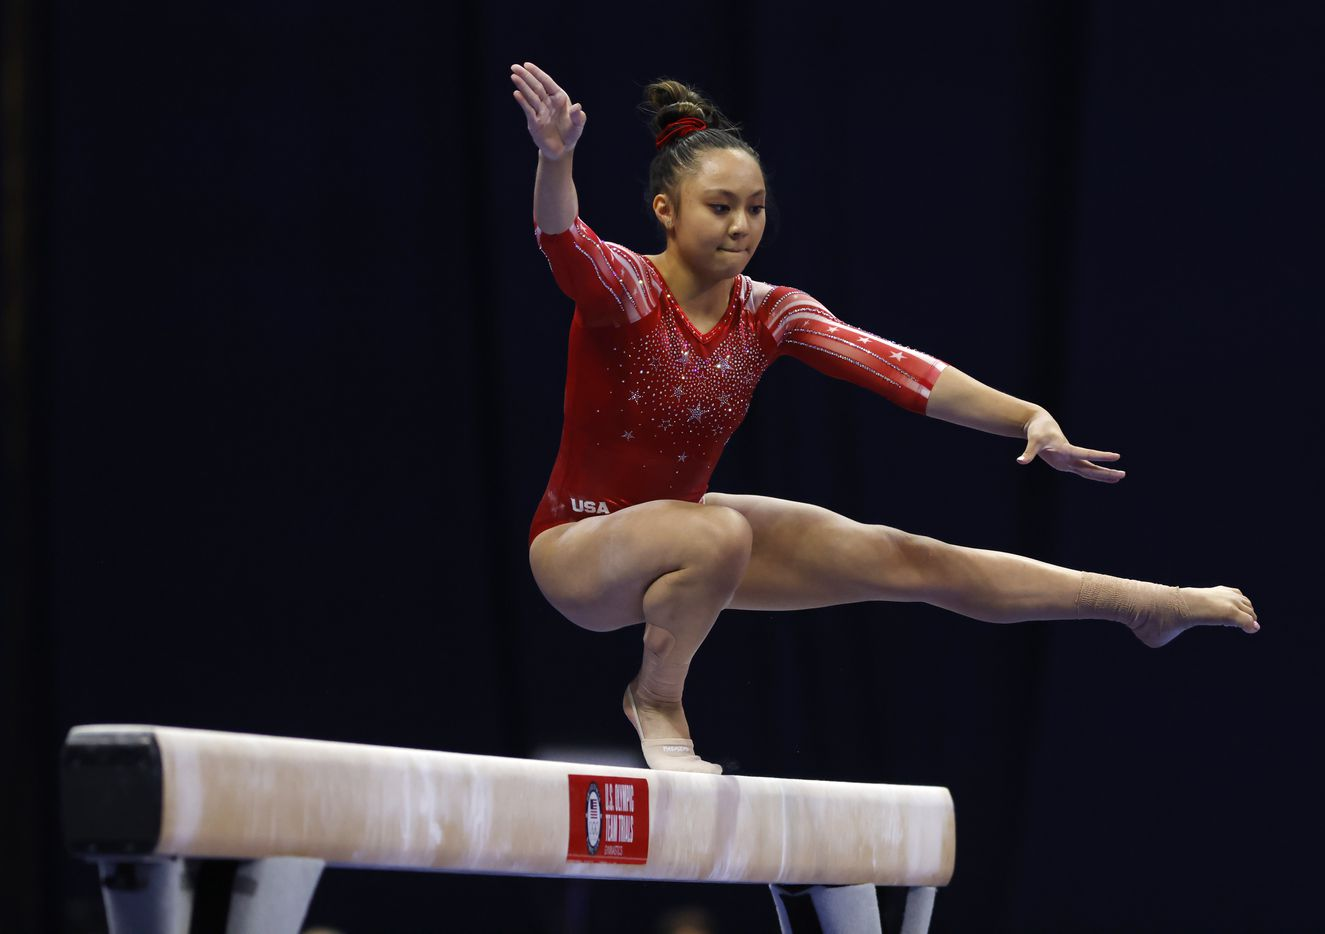 Emma Malabuyo competes on the balance beam during day 2 of the women's 2021 U.S. Olympic Trials at The Dome at America's Center on Saturday, June 27, 2021 in St Louis, Missouri.(Vernon Bryant/The Dallas Morning News)